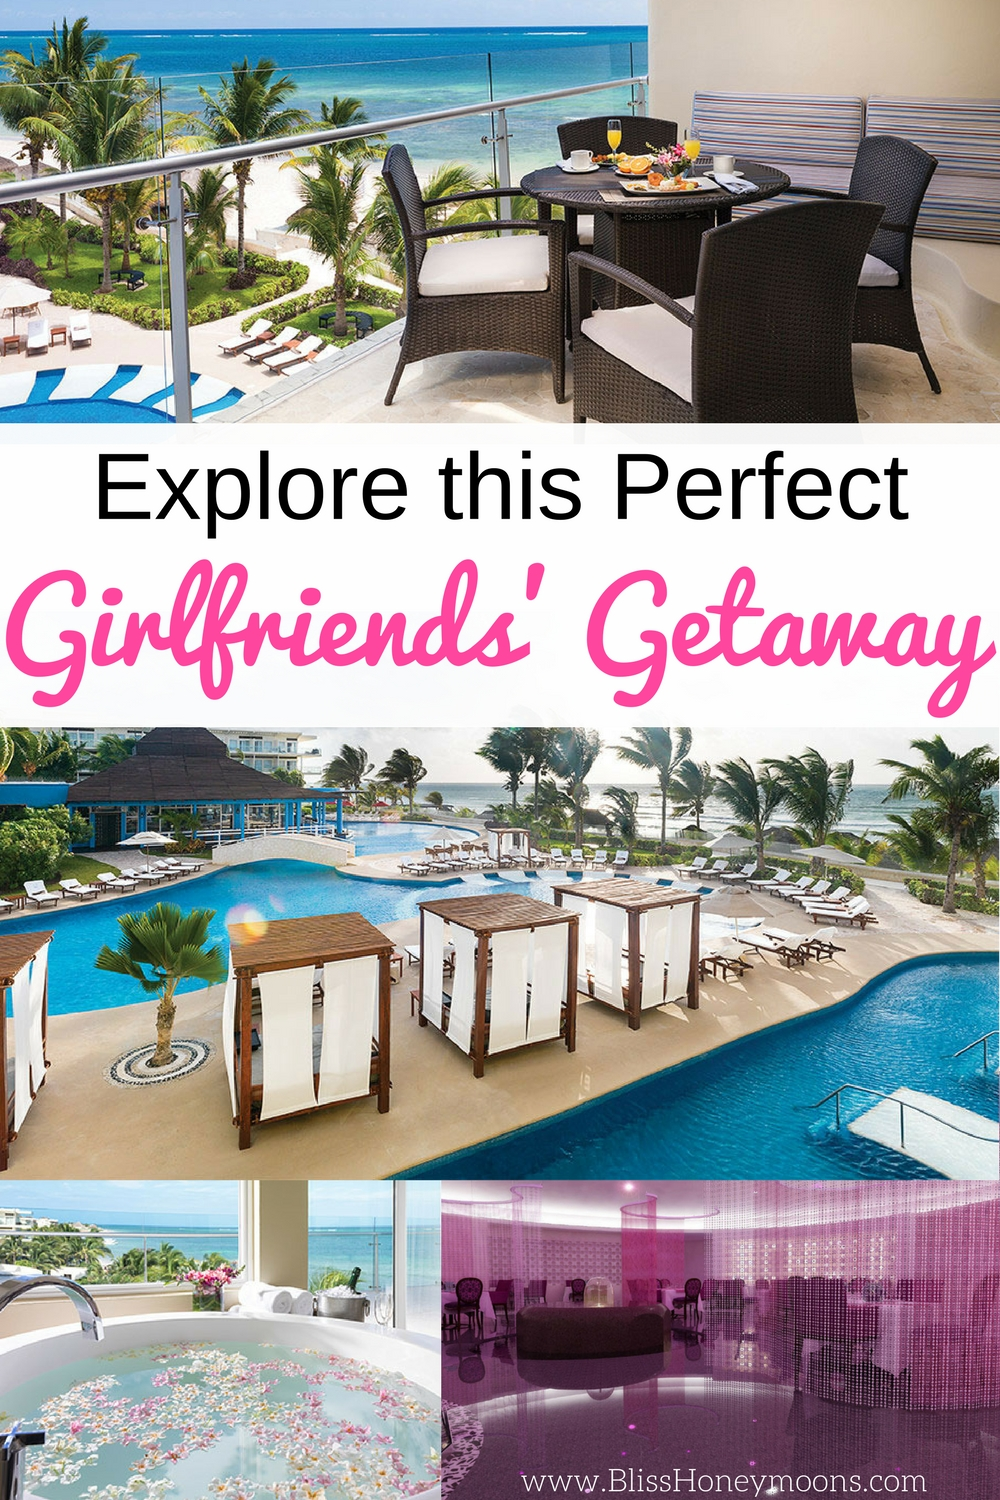 Azul Sensatori girlfriends getaway, best of Azul Sensatori, best resorts for girlfriend getaways, perfect girls trip resorts, top girls trip resort